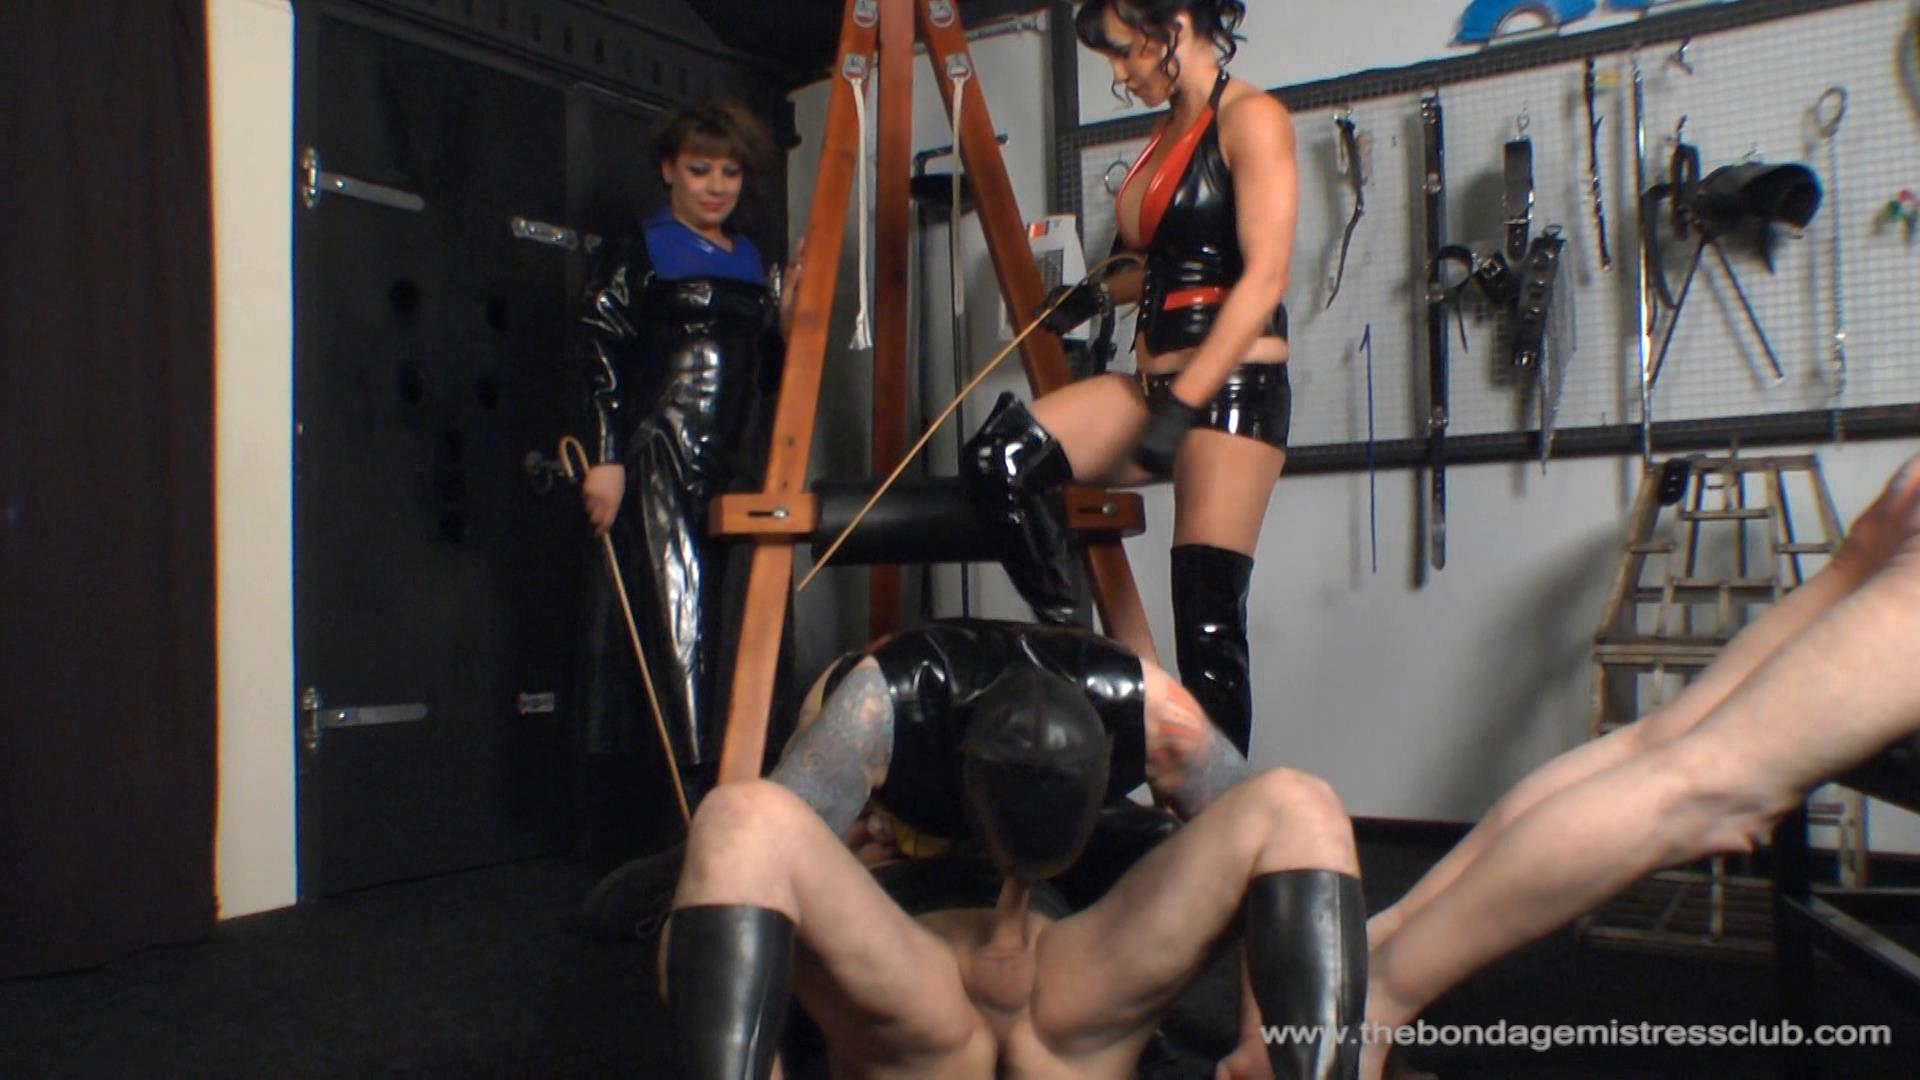 Mistress Rouge In Scene: 80 Strokes - THEBONDAGEMISTRESSCLUB - FULL HD/1080p/WMV